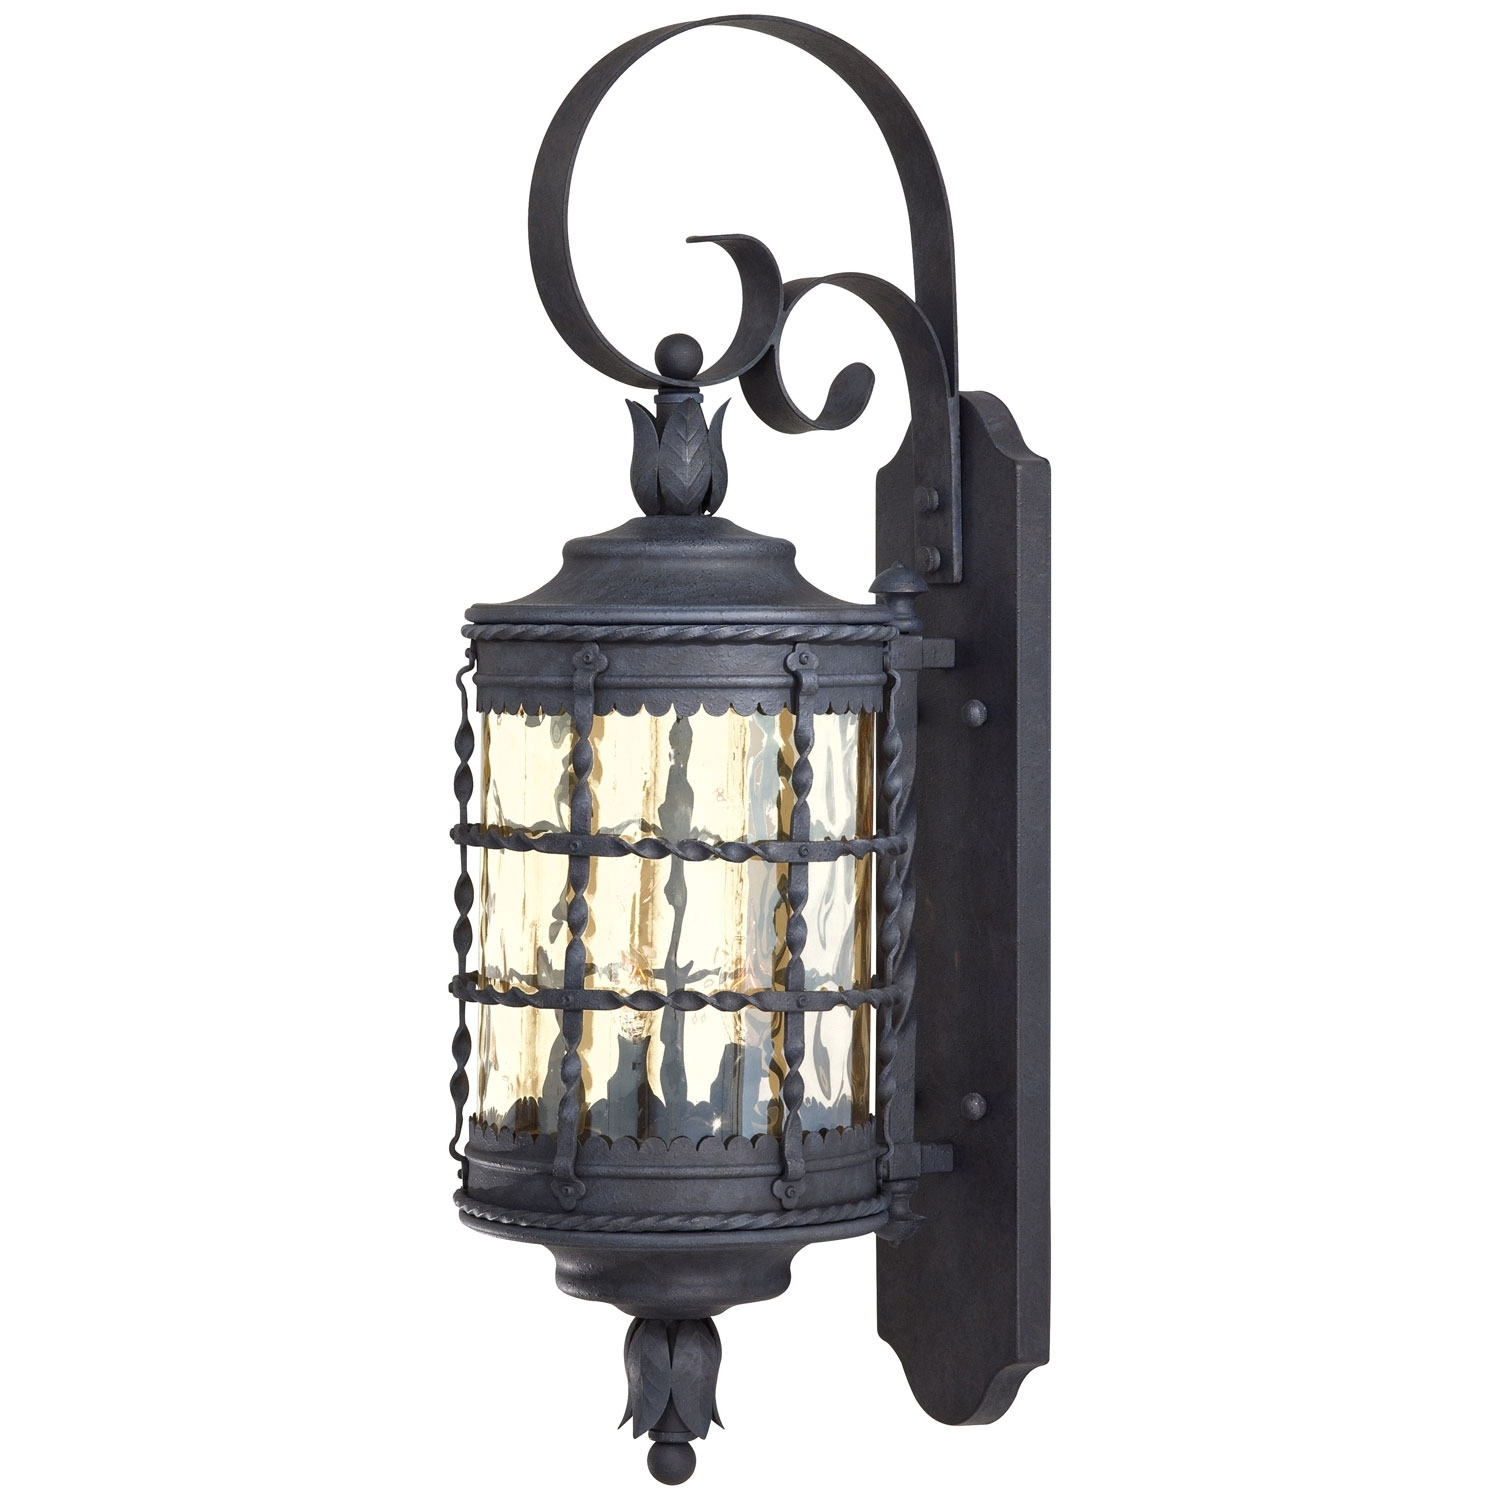 Mallorca Exterior Wall Mount Minka Lavery Wall Mounted Outdoor Intended For Large Outdoor Wall Light Fixtures (#12 of 15)